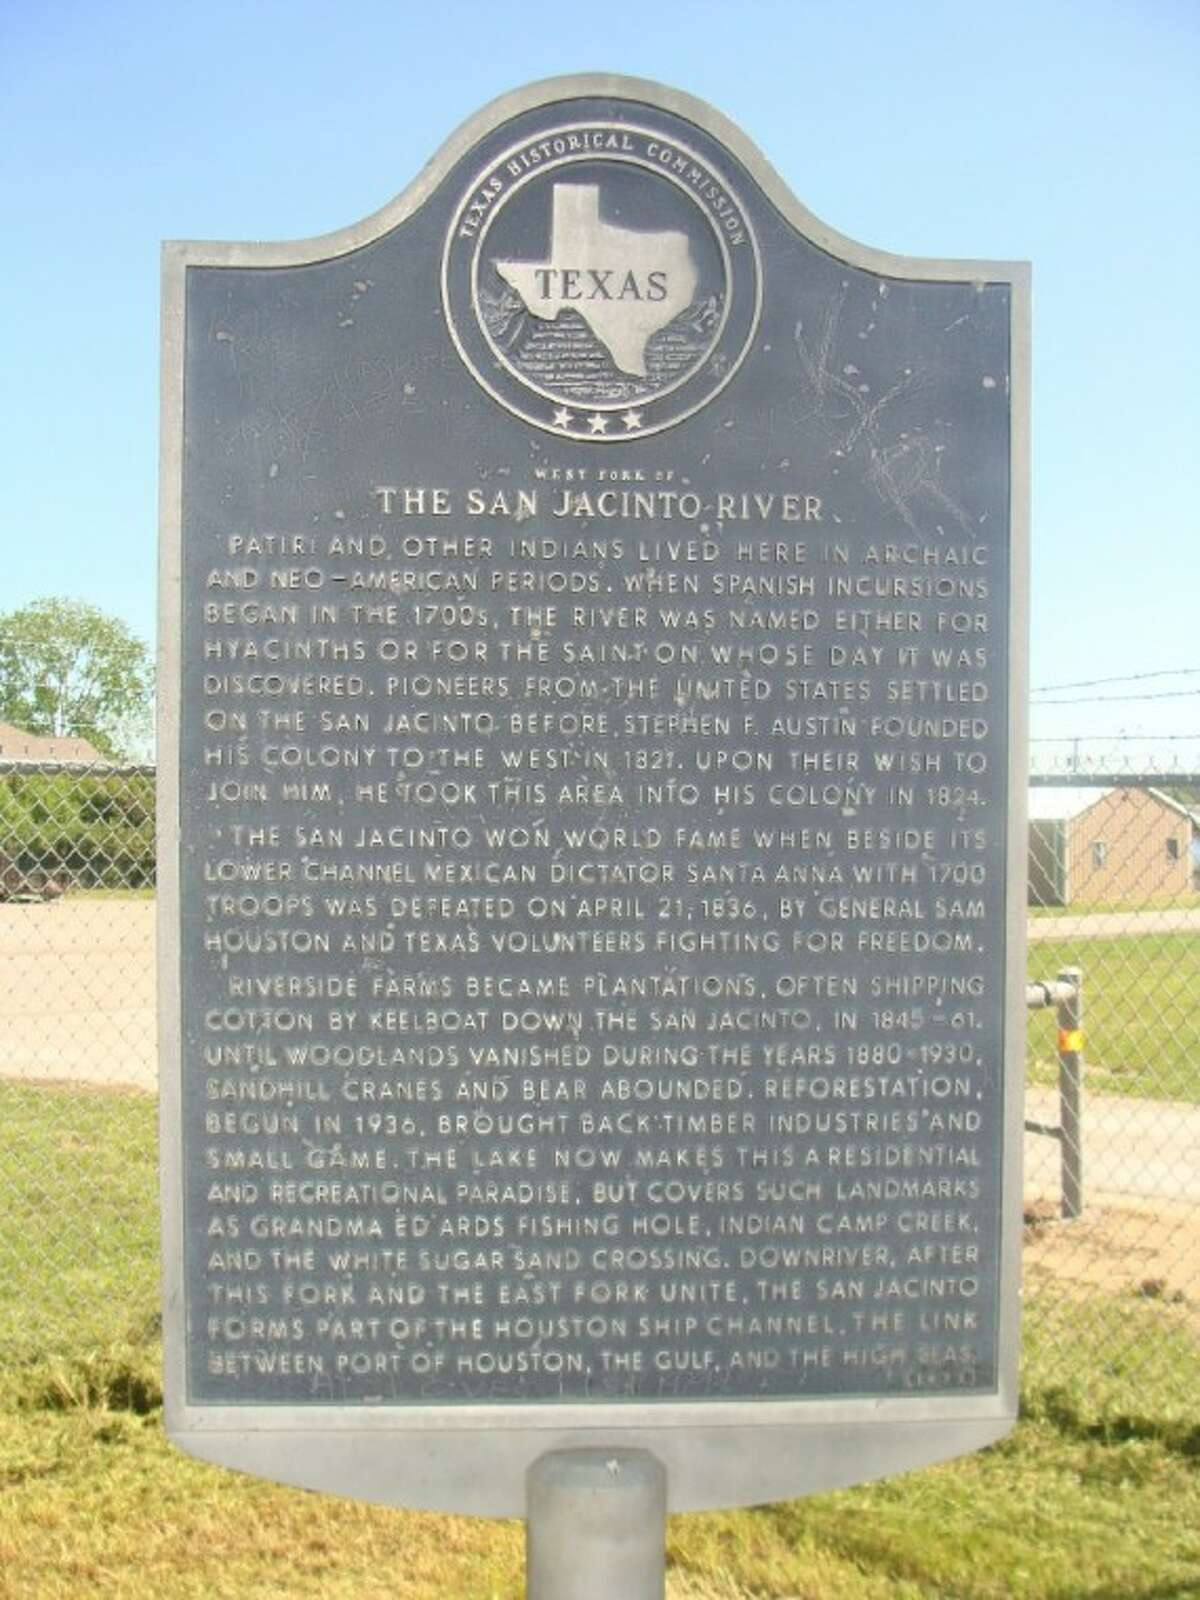 A historical marker for the San Jacinto River is situated at the start of the Lake Conroe Dam behind the U.S. Coast Guard Auxiliary on Texas 105.